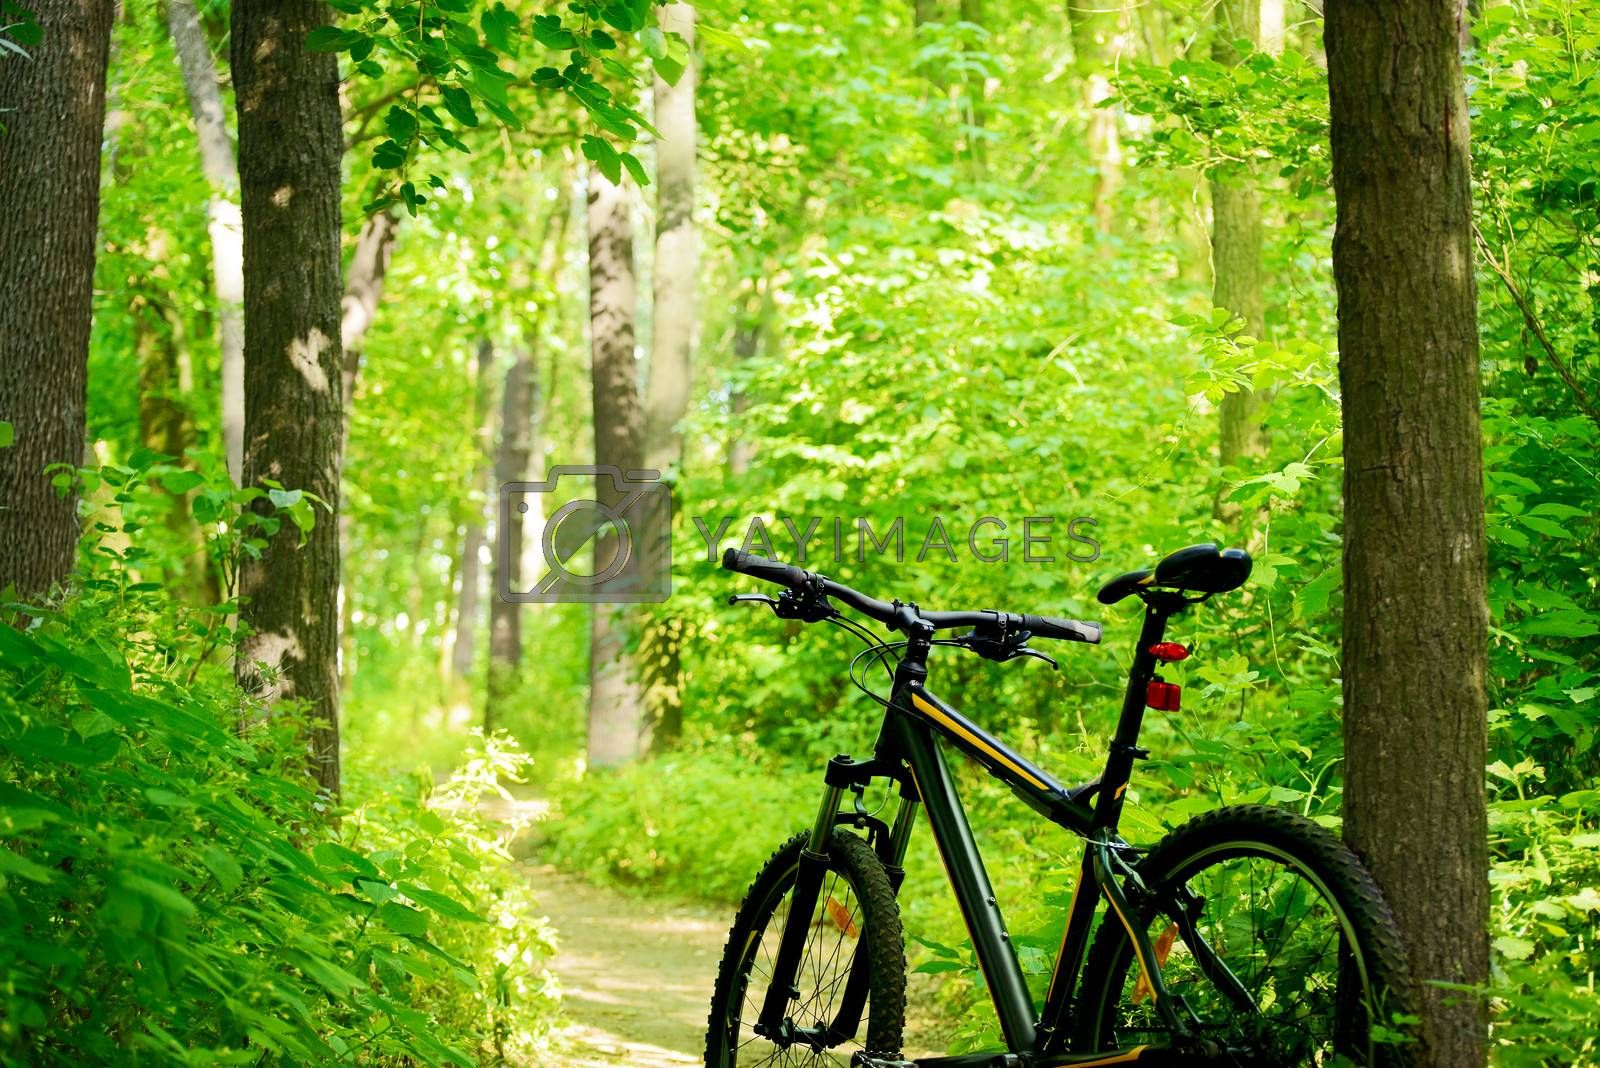 Royalty free image of Mountain Bike on the Trail in the Forest by maxpro